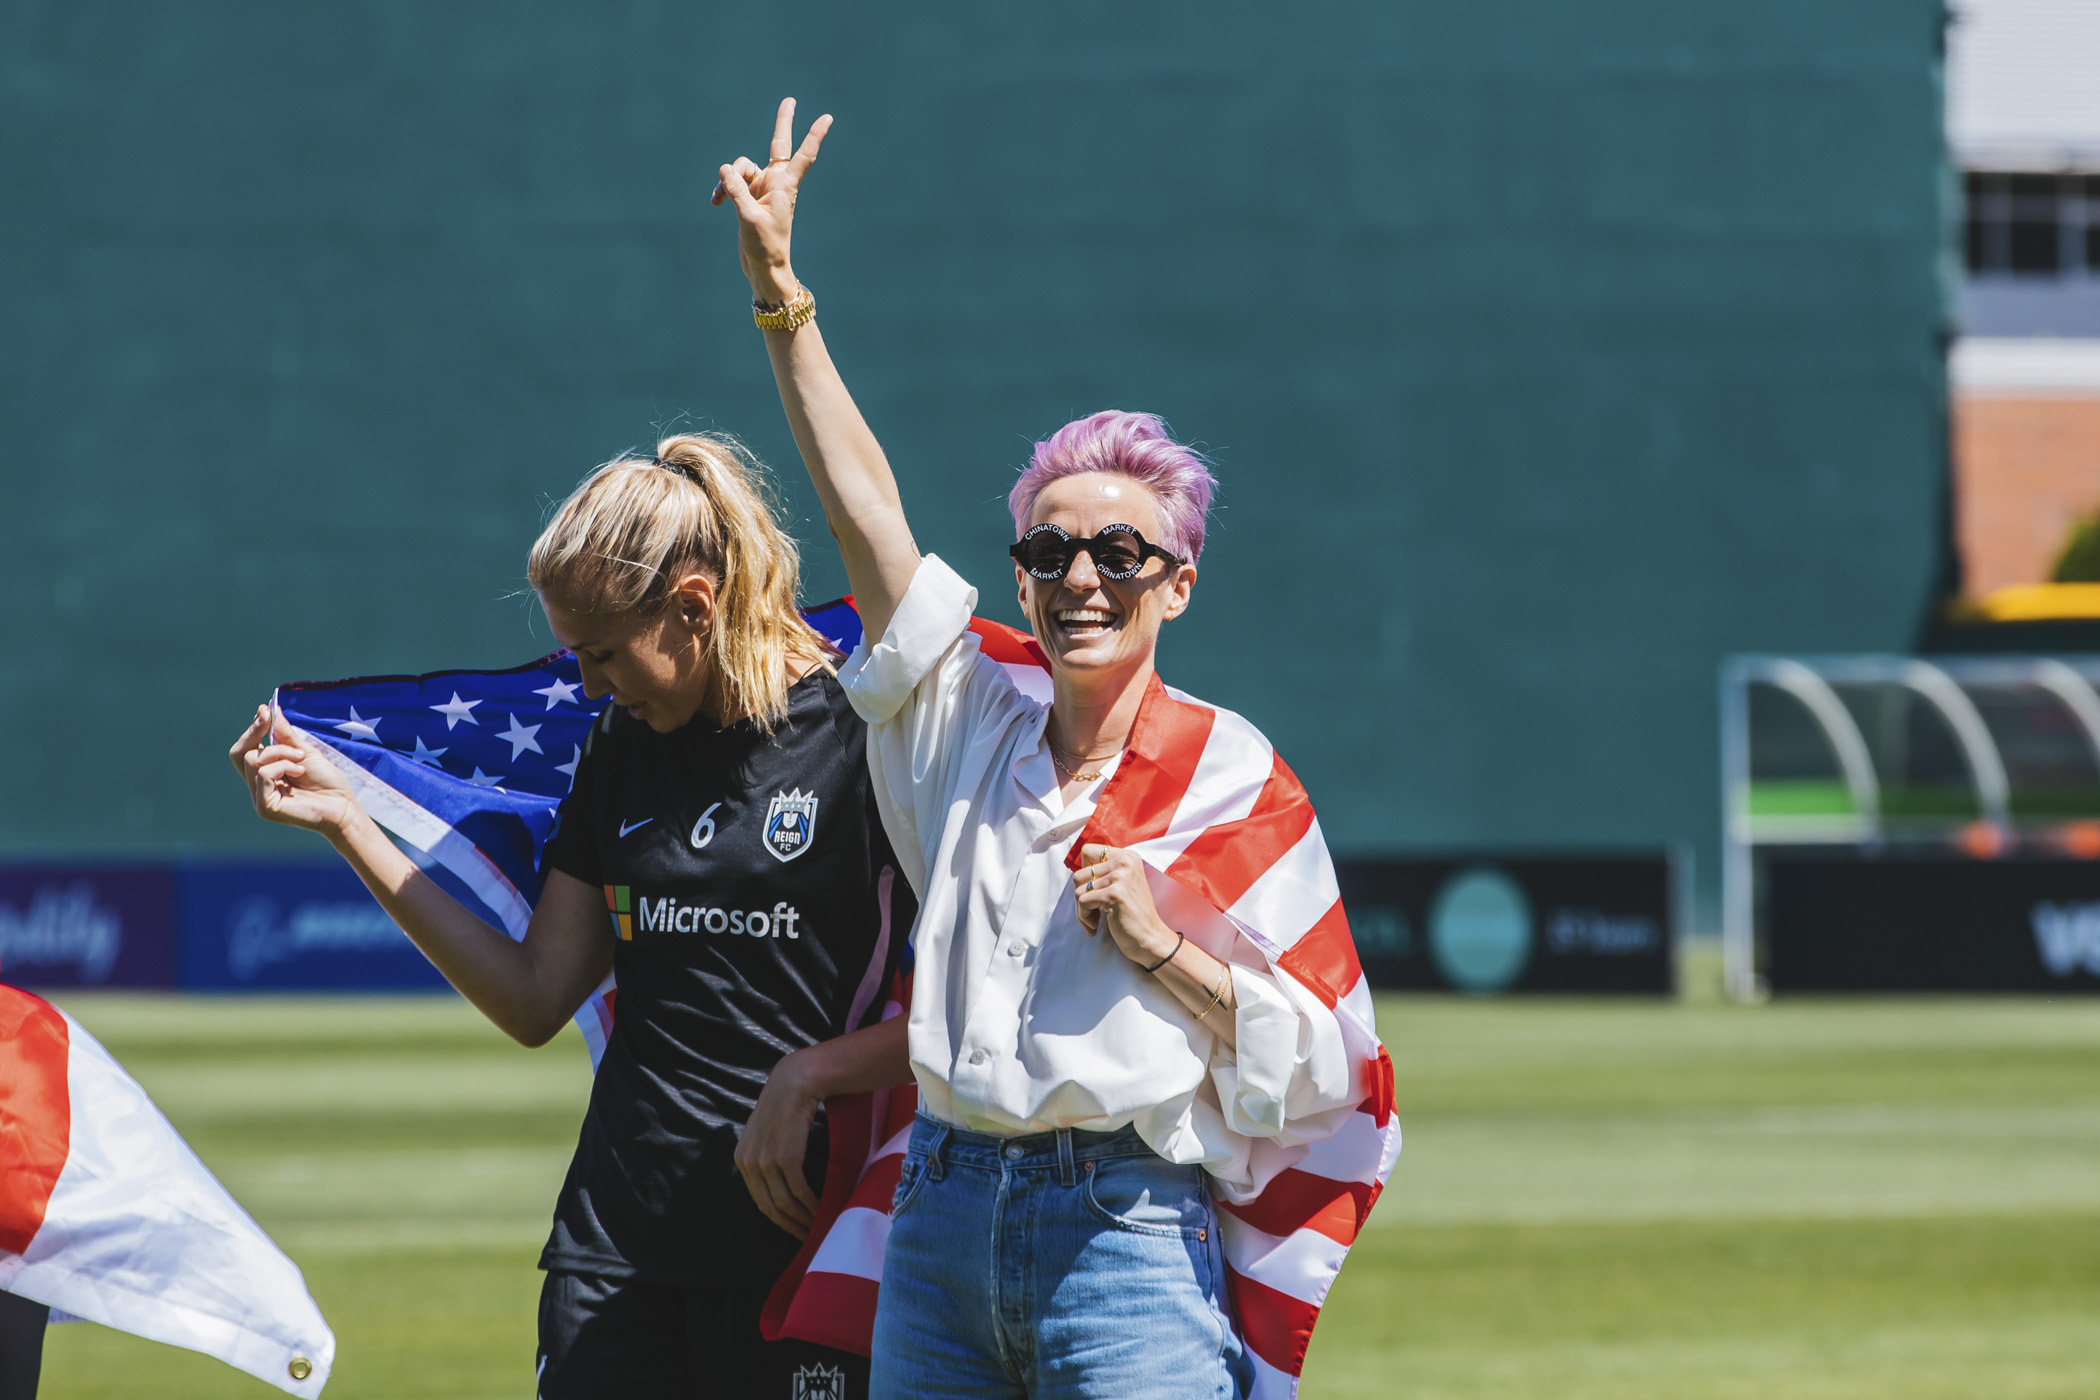 World Cup champions Megan Rapinoe and Allie Long were welcomed back to their home team the Seattle Reign FC on Sunday, July 28 at their first match back after their phenomenal{ } World Cup{ } win. While neither played this game, proud fans filled a sold-out Cheney Stadium in Tacoma, where 7,000+ watched as the Reign took on the Chicago Red Stars. (Image: Sunita Martini / Seattle Refined)